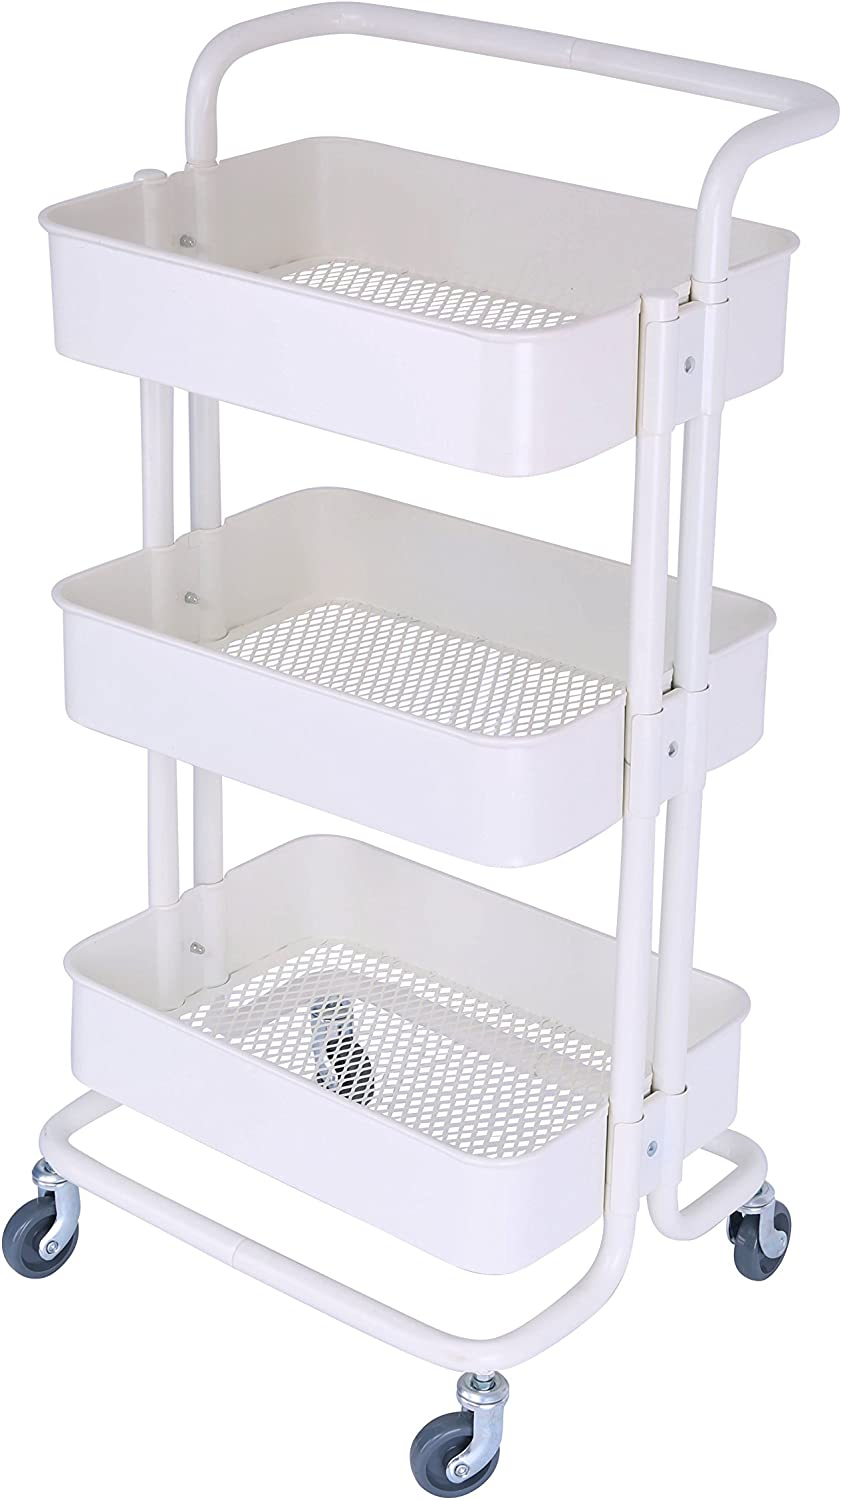 3-Tier Metal Mesh Storage Rolling Cart with Utility Handle, Indoor or Outdoor Storage Organizer, Cream White